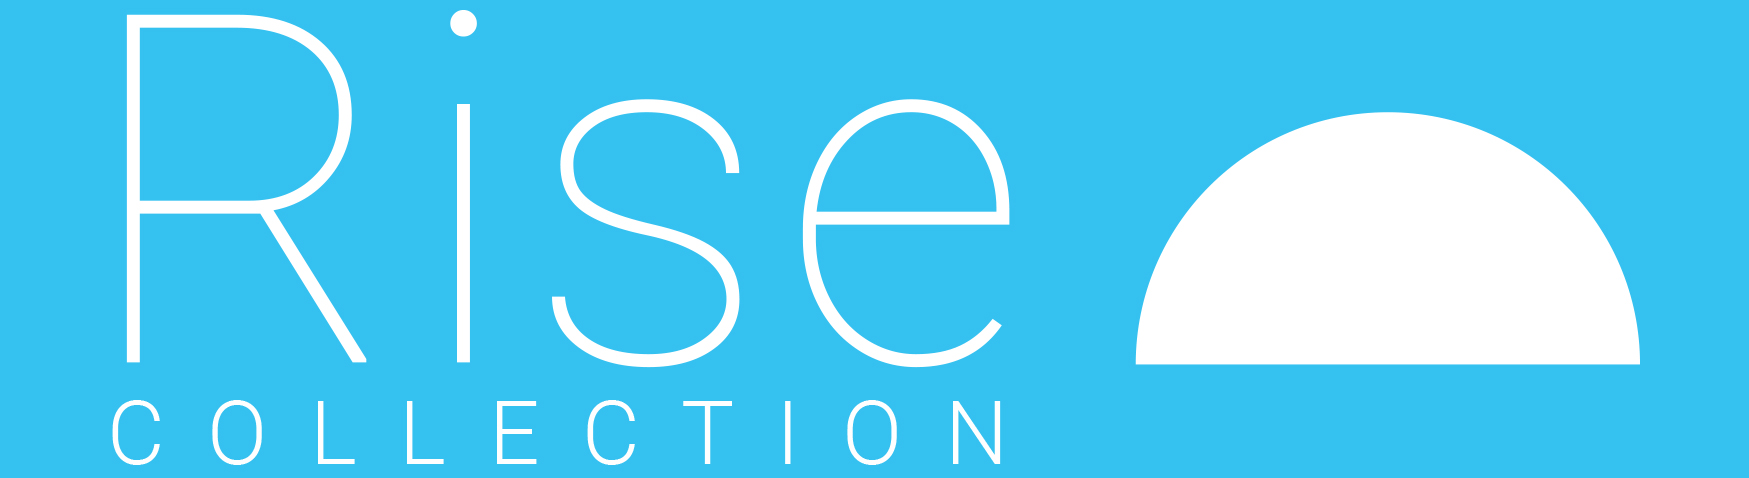 rise collection logo